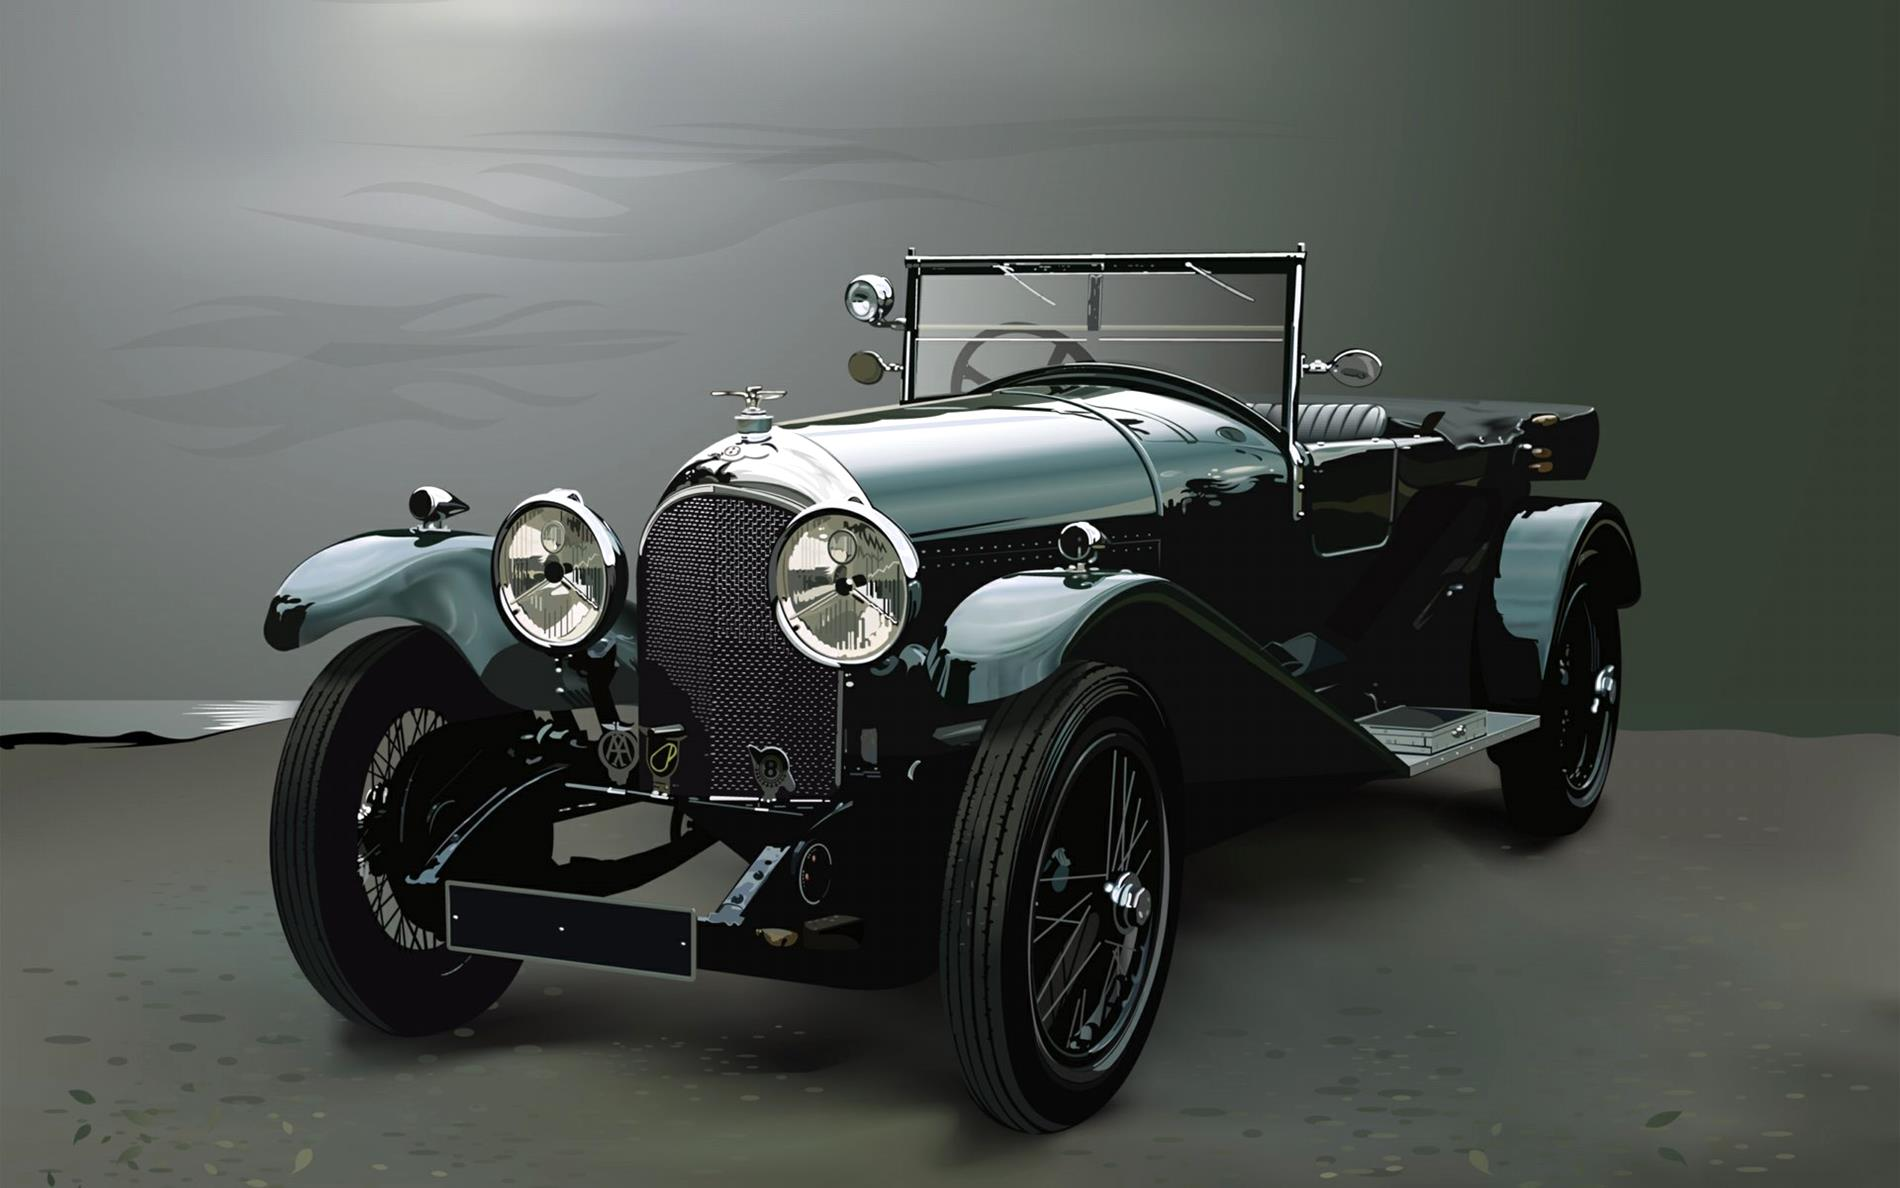 The-Best-Vintage-Car-Wallpapers-2-Best Vintage Car-wv-aston martin-ferarri